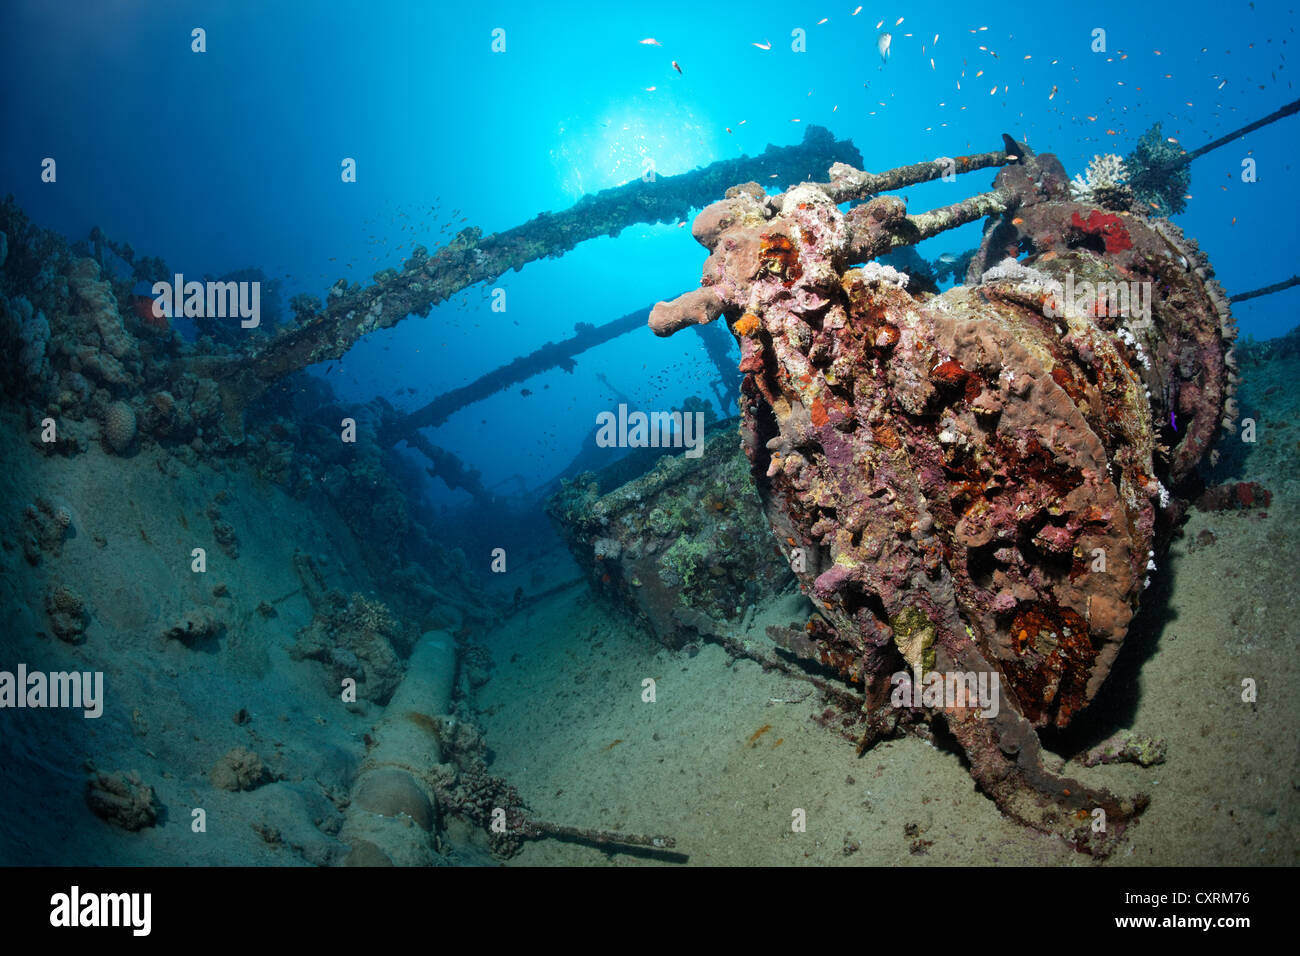 Superstructure, winch, shipwreck, tanker, S.S. Turbo, build 1912, sank on 4/4/1942 during World War II, hit by Italian - Stock Image